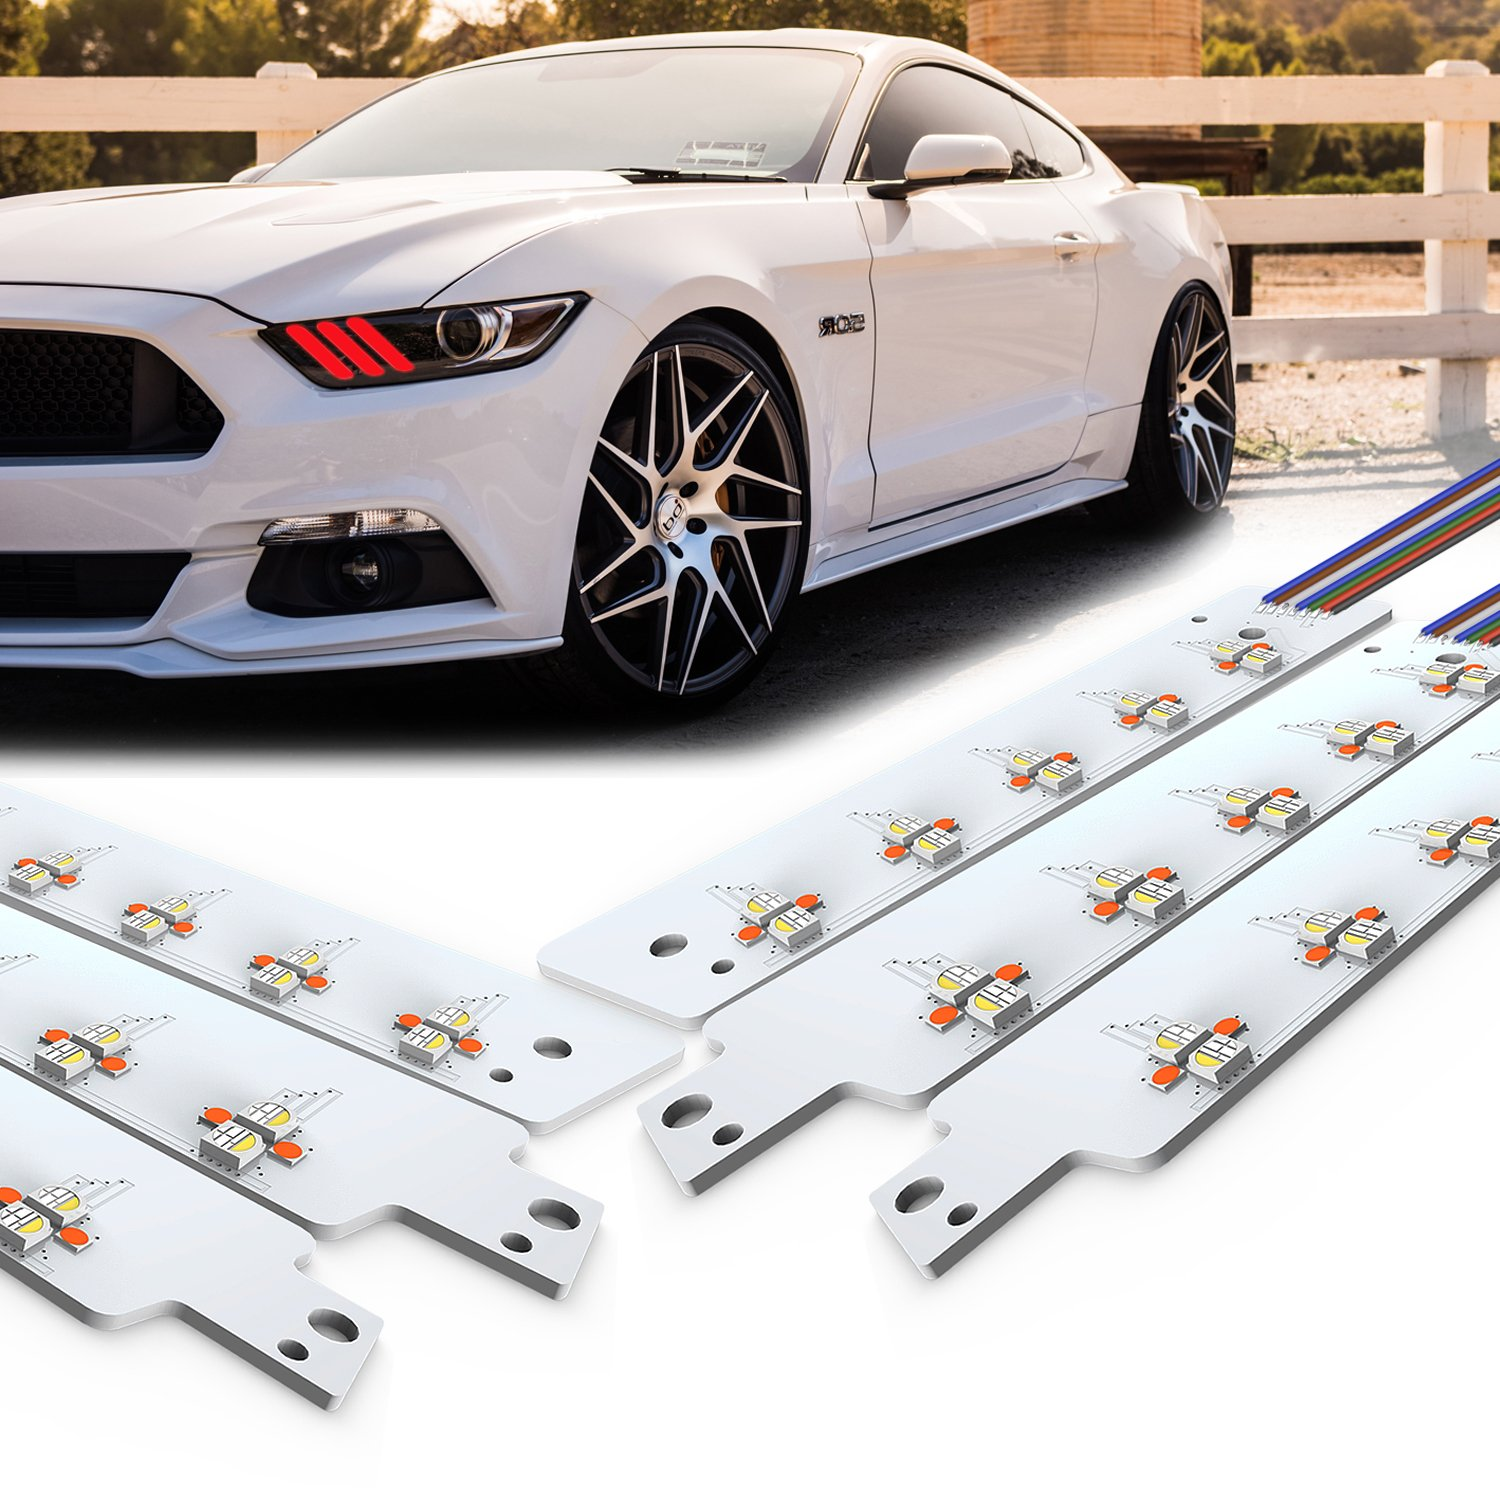 Proauto Multicolor Drl Led Boards For All 2015 2017 Ford Rtx Wiring Harness Mustang Light Kit With Rgb Function Place On Left And Right Vehicle Fantastic